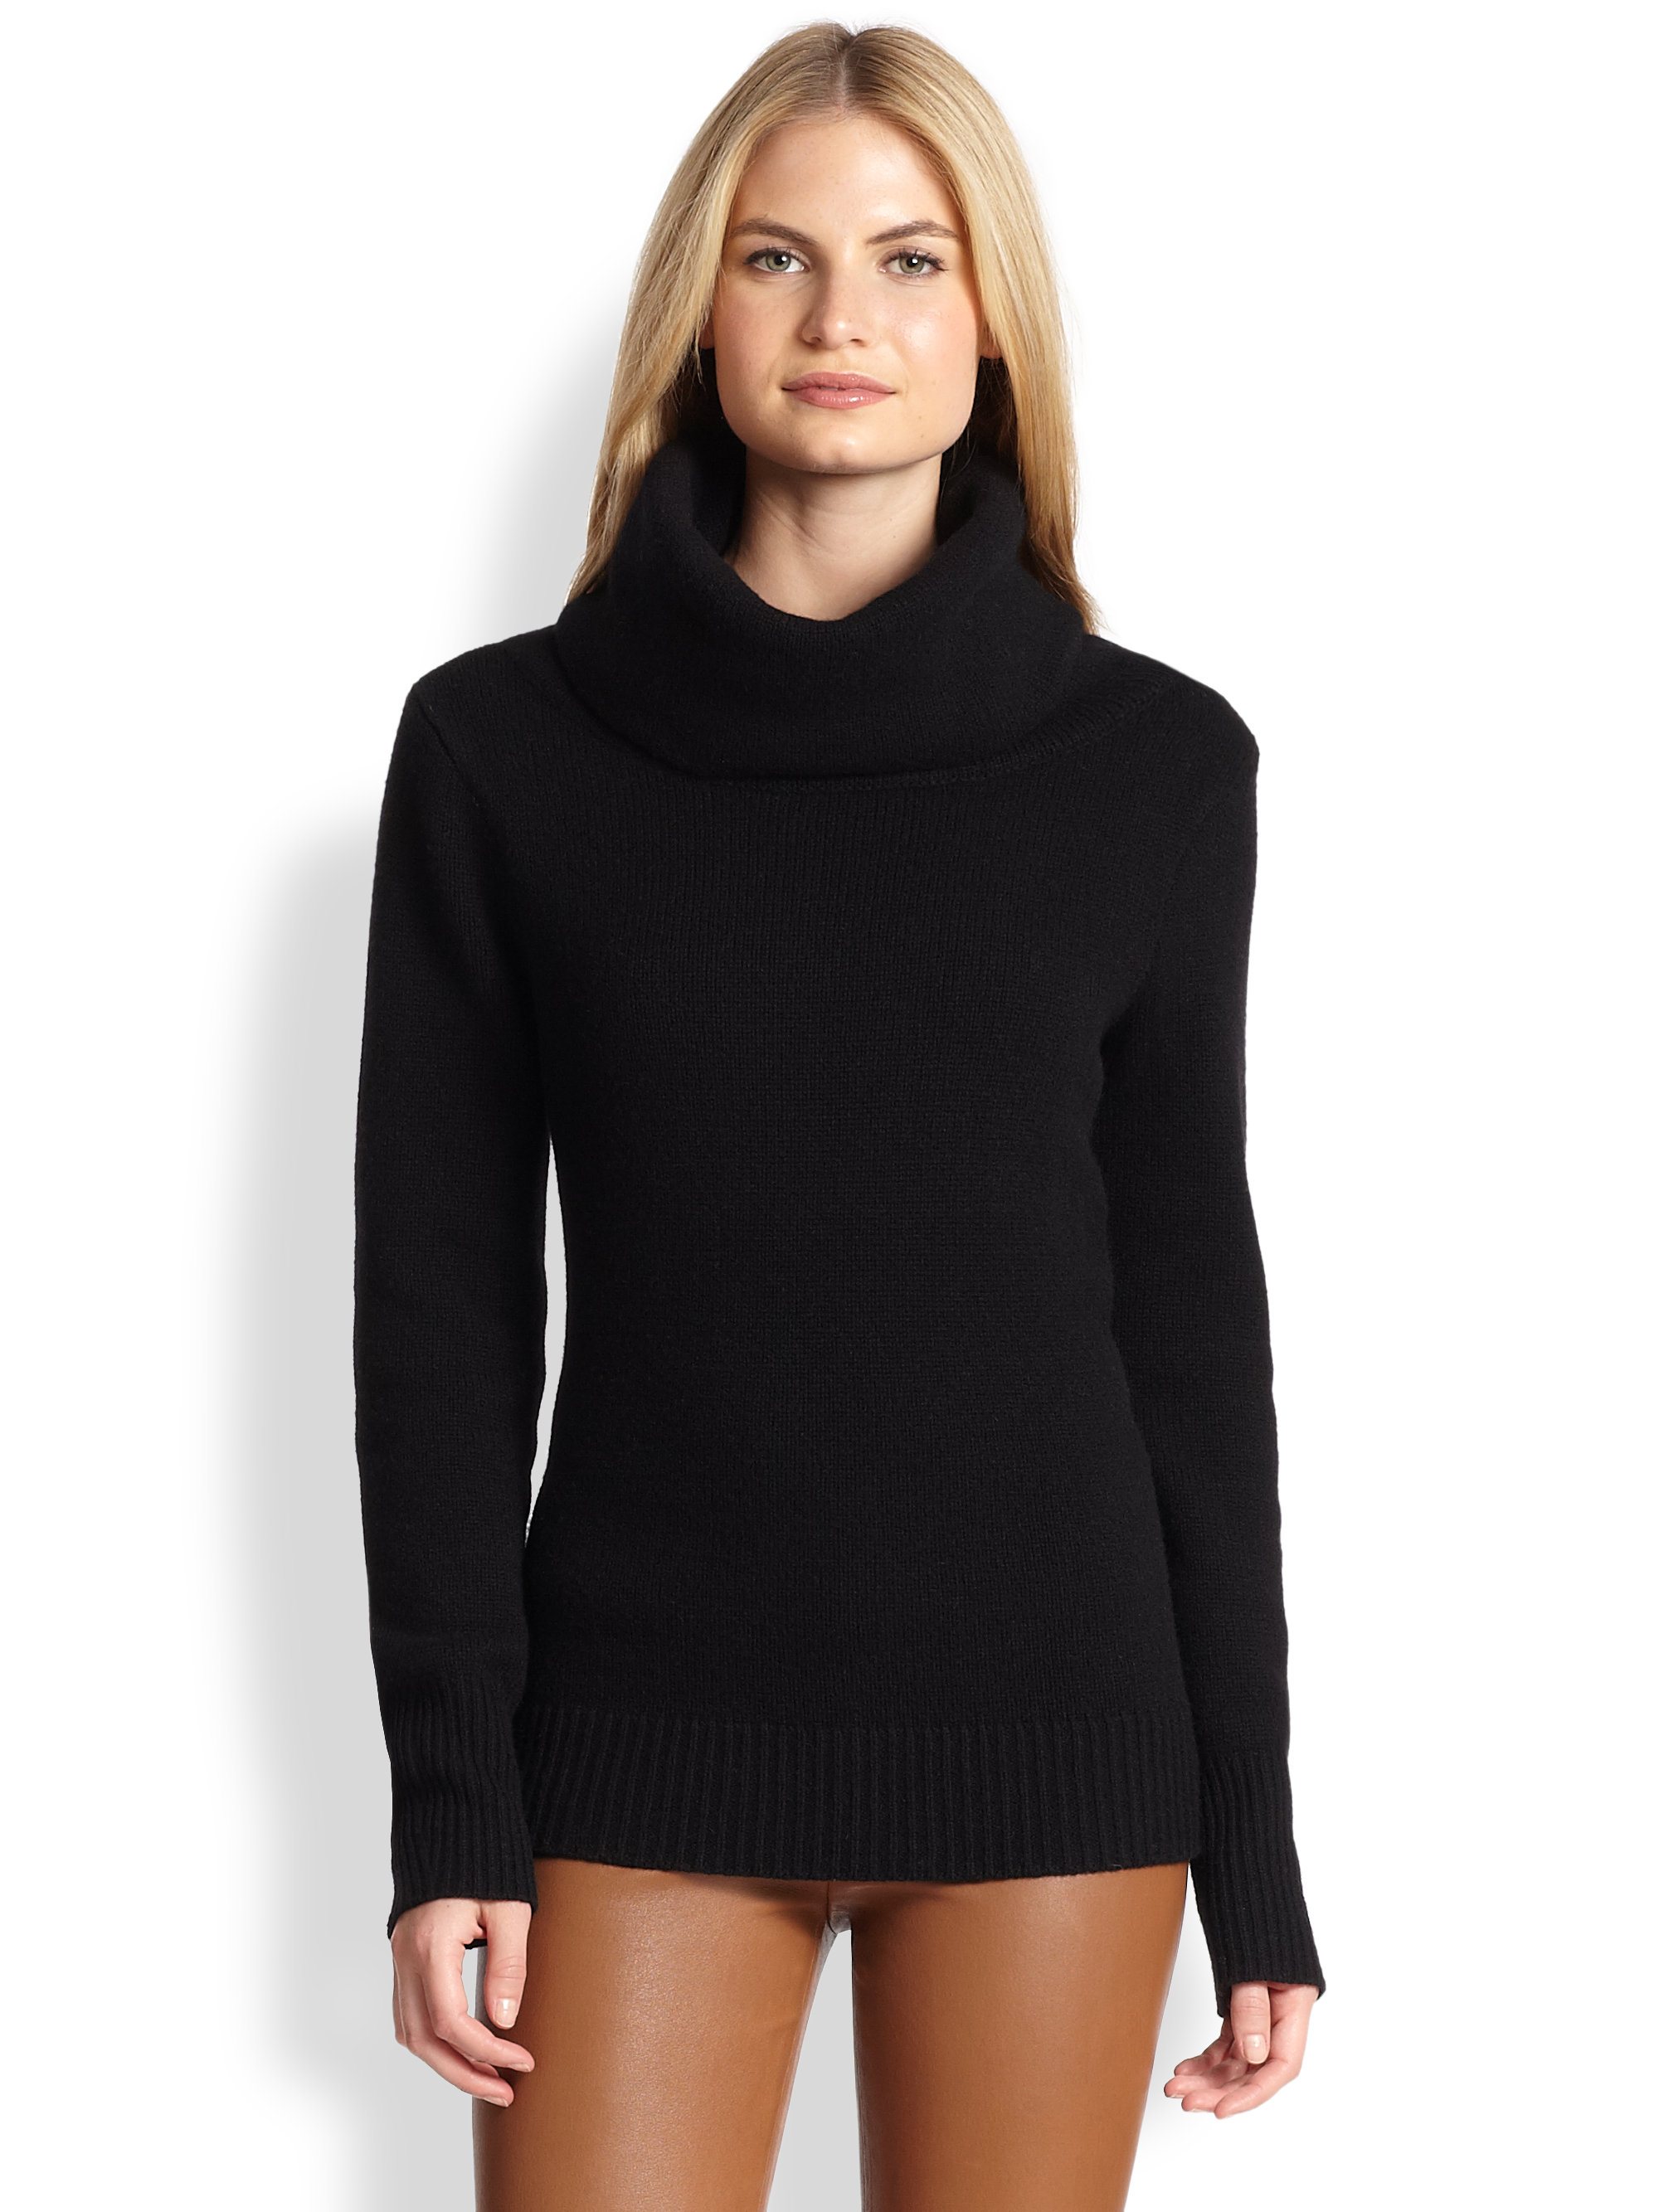 Ralph lauren black label Cashmere Cowlneck Sweater in Black | Lyst